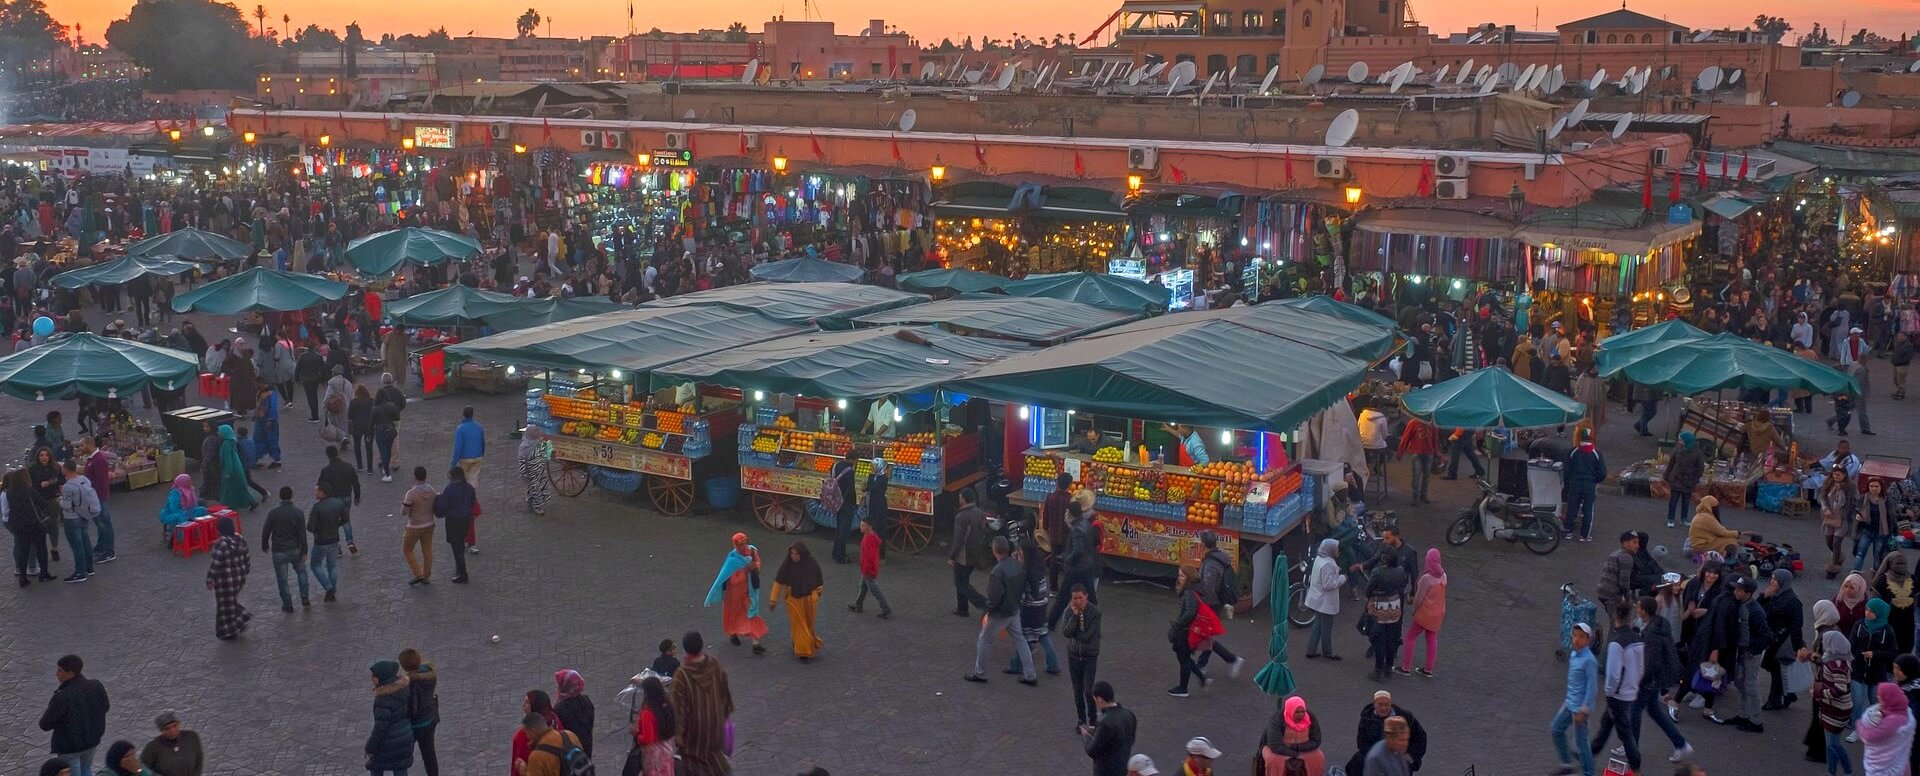 Culture and Tradition in Marrakech - Marrakech